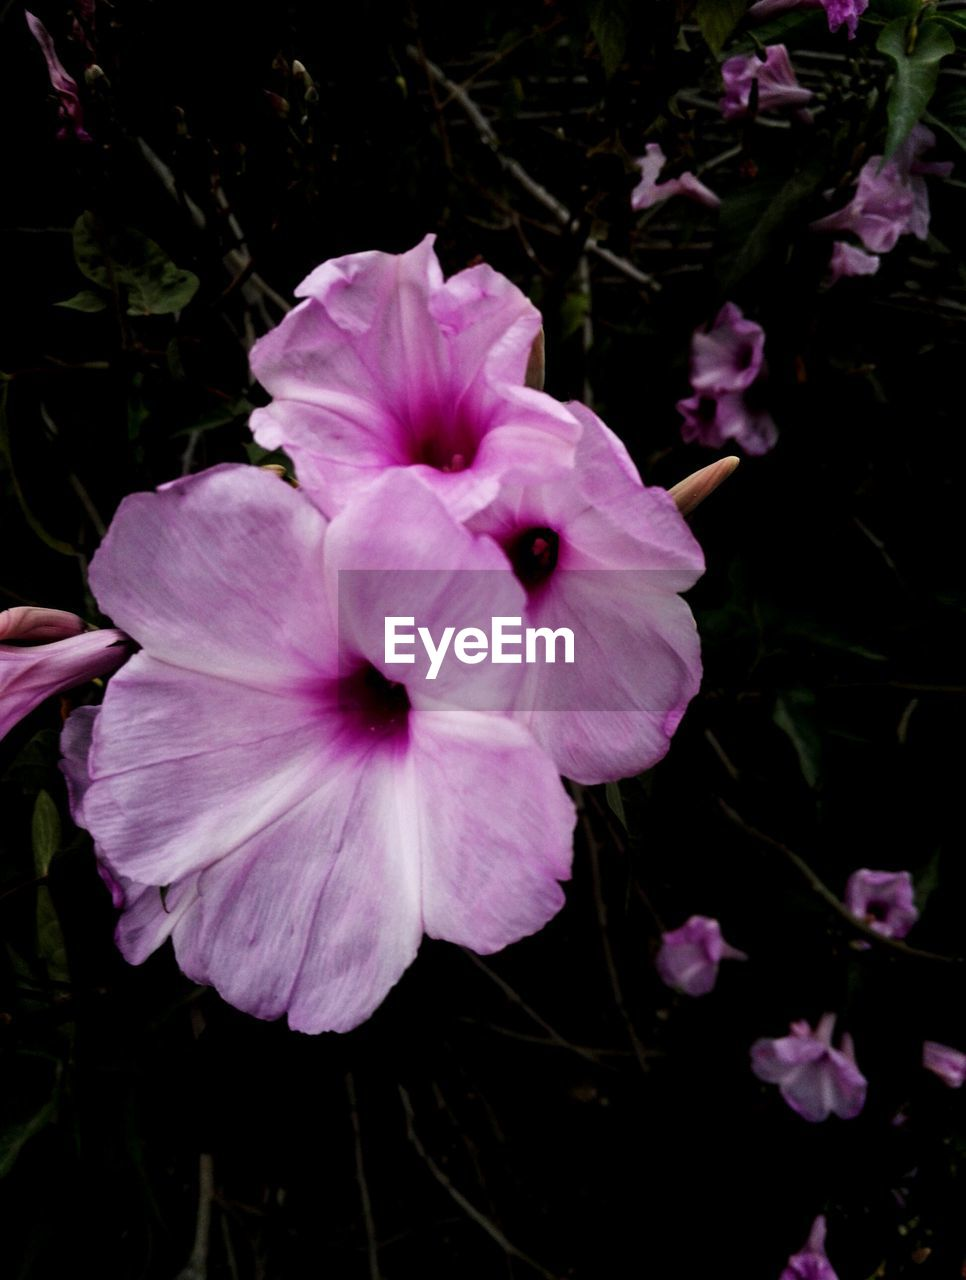 flower, petal, fragility, flower head, beauty in nature, growth, plant, nature, freshness, purple, blooming, pink color, no people, day, outdoors, periwinkle, petunia, close-up